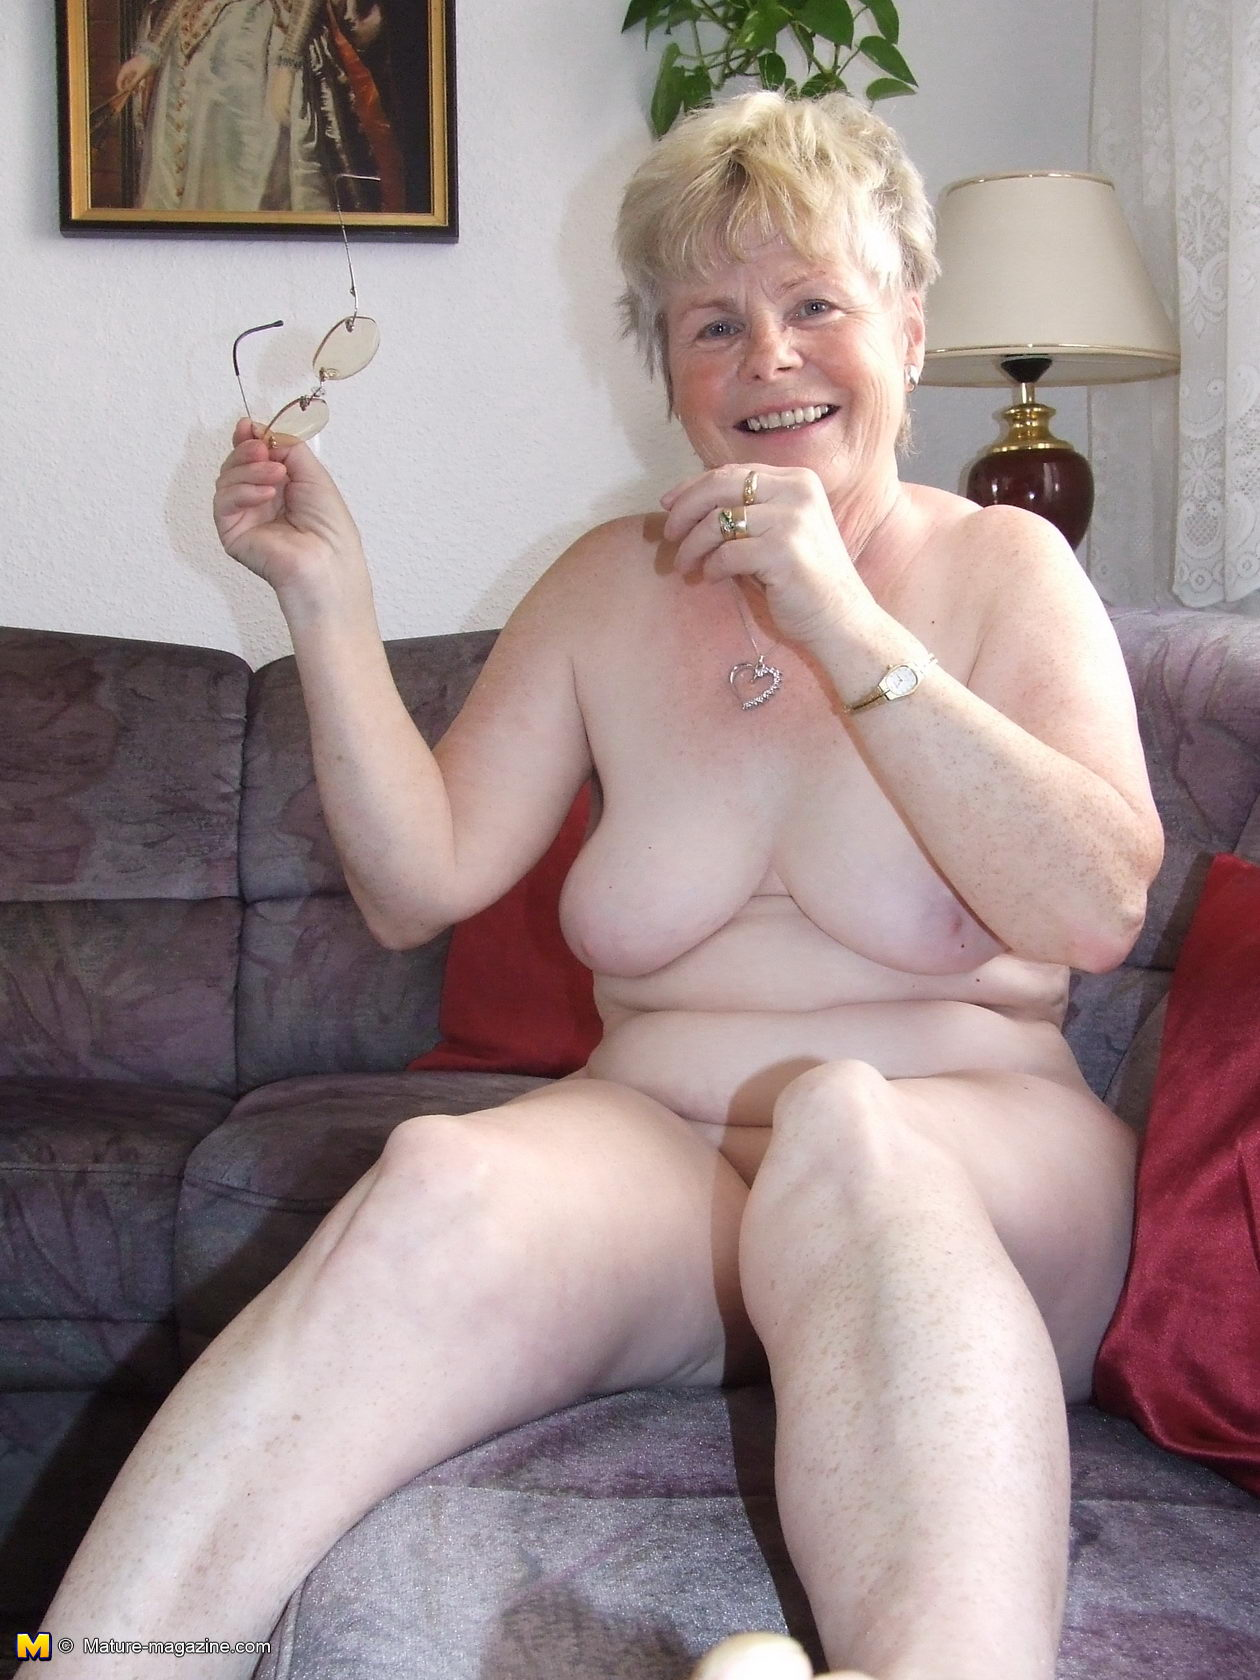 Old Lady Naked Pics